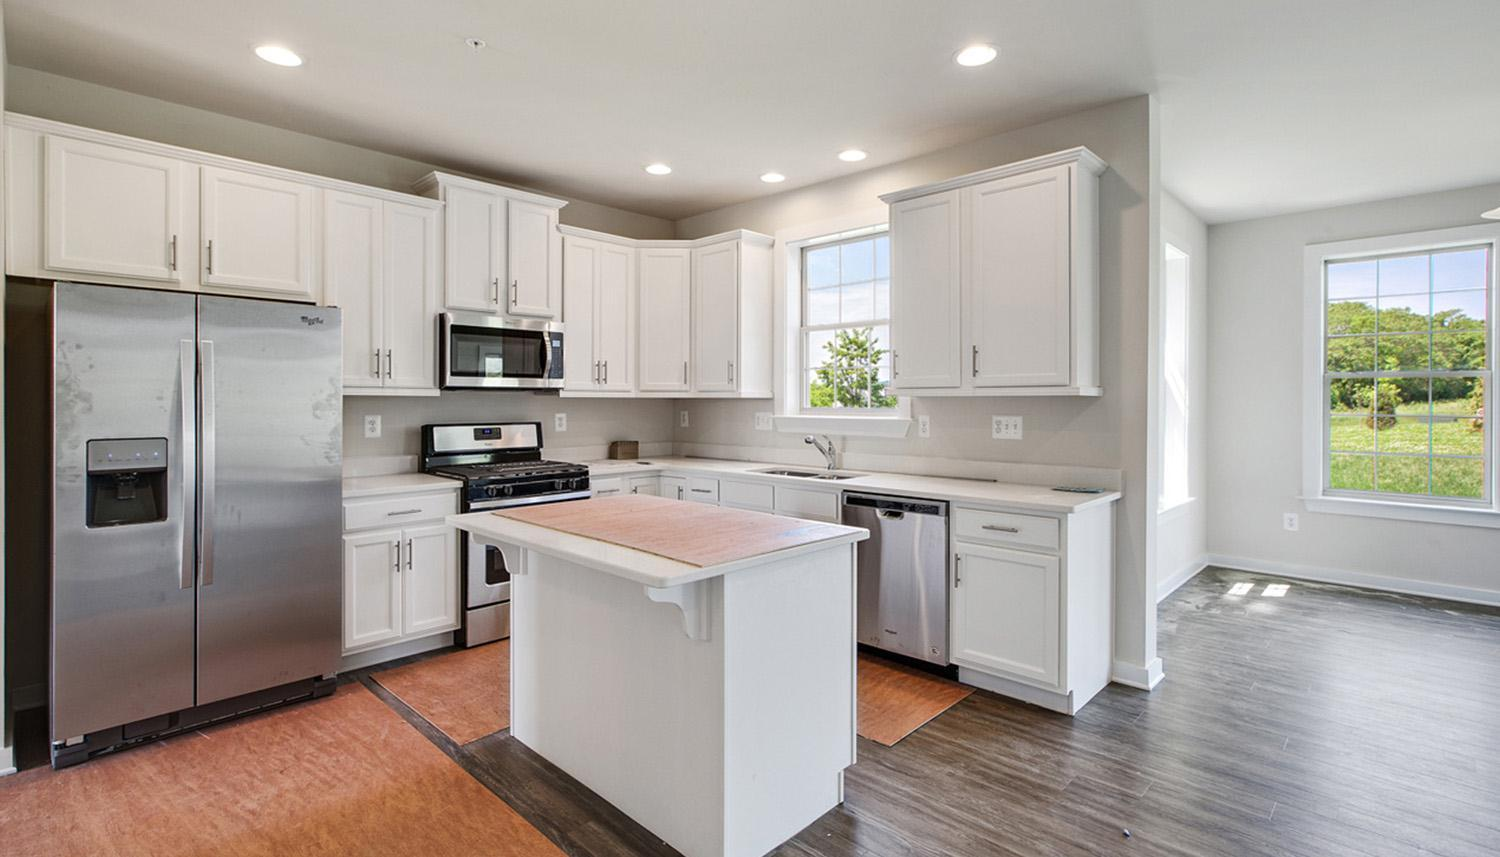 Kitchen featured in the Bristol II By Dan Ryan Builders in Pittsburgh, PA